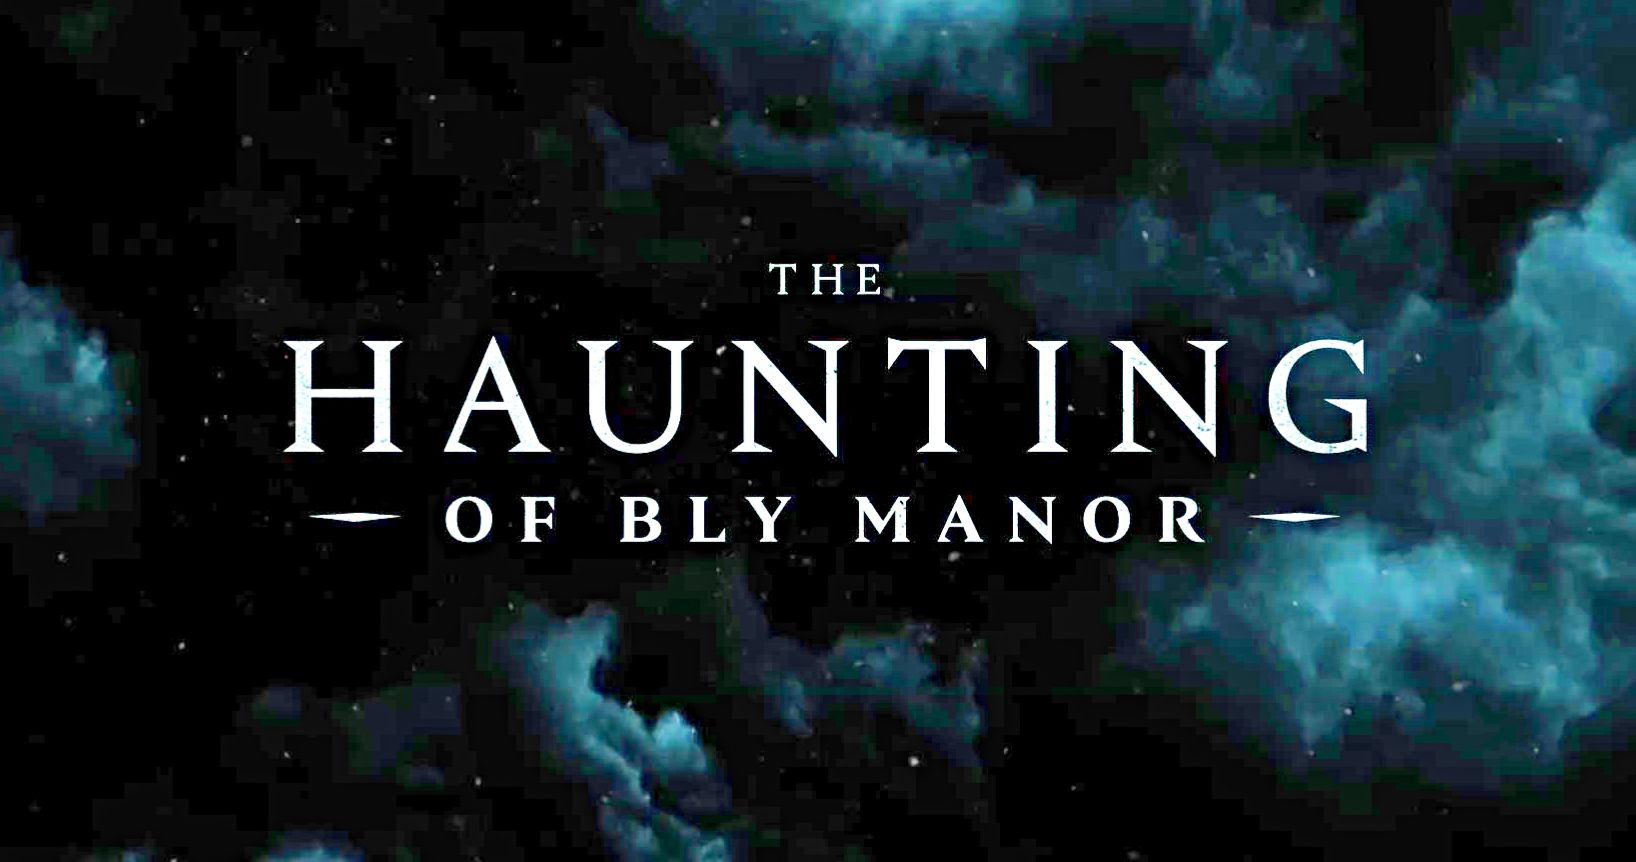 Haunting Of Bly Manor Creator Claims It S Much Scarier Than Hill House Mike Flanagan Intends To Expand On Elements Of The First Haunting Bly House On A Hill